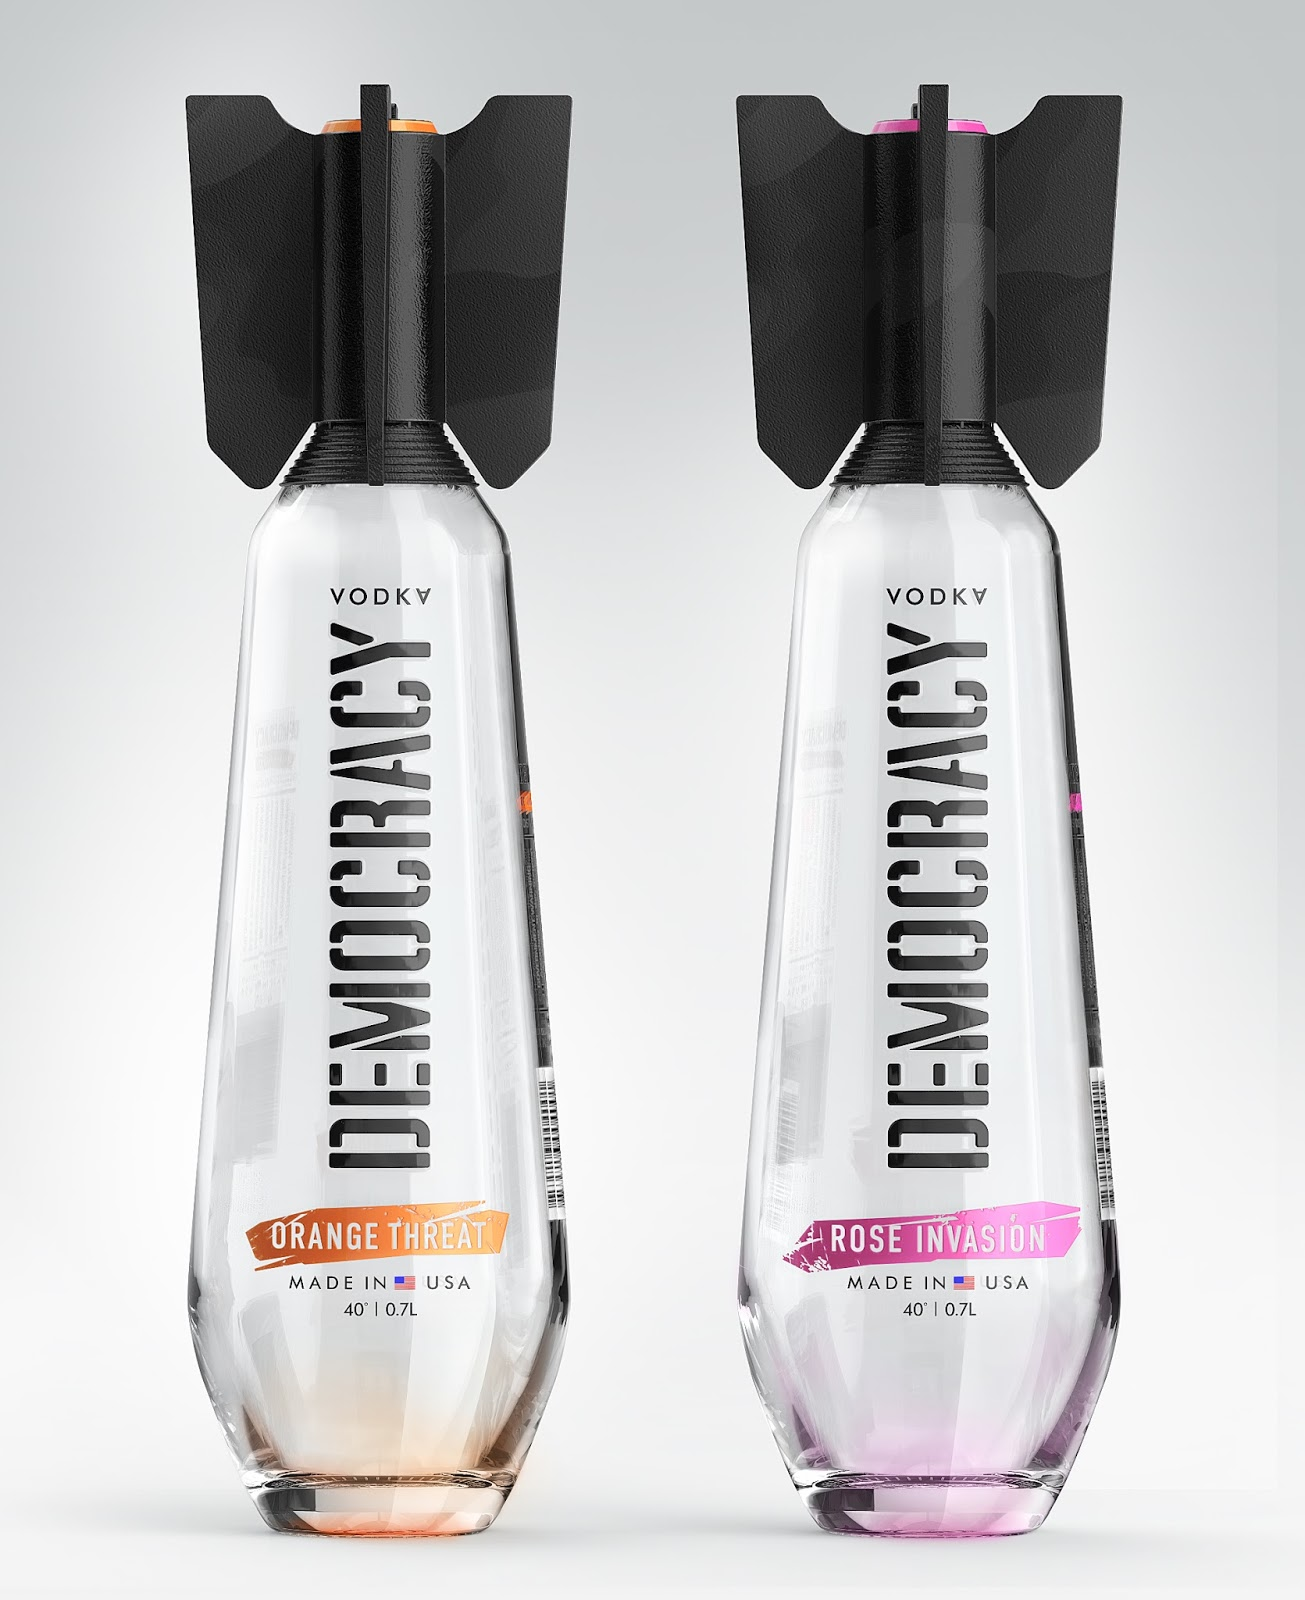 Democracy Vodka Concept On Packaging Of The World